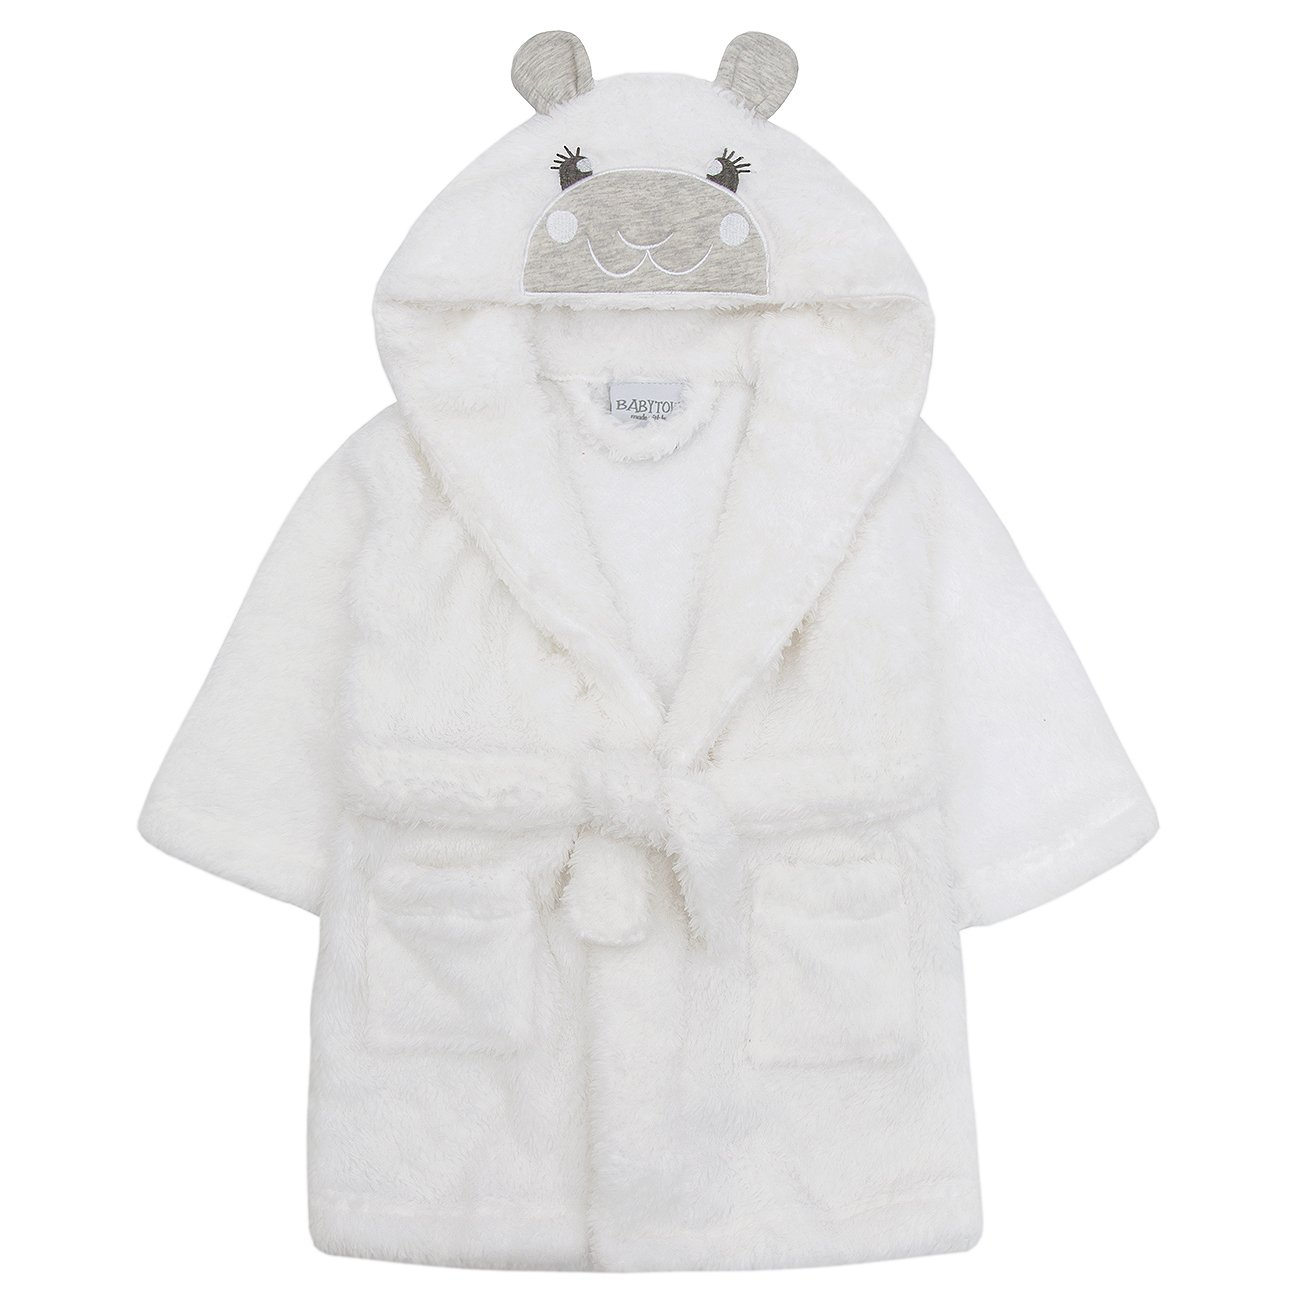 BABY TOWN Babytown Baby Boys and Girls Unisex Snuggle Fleece Hooded Lamb Dressing Robe